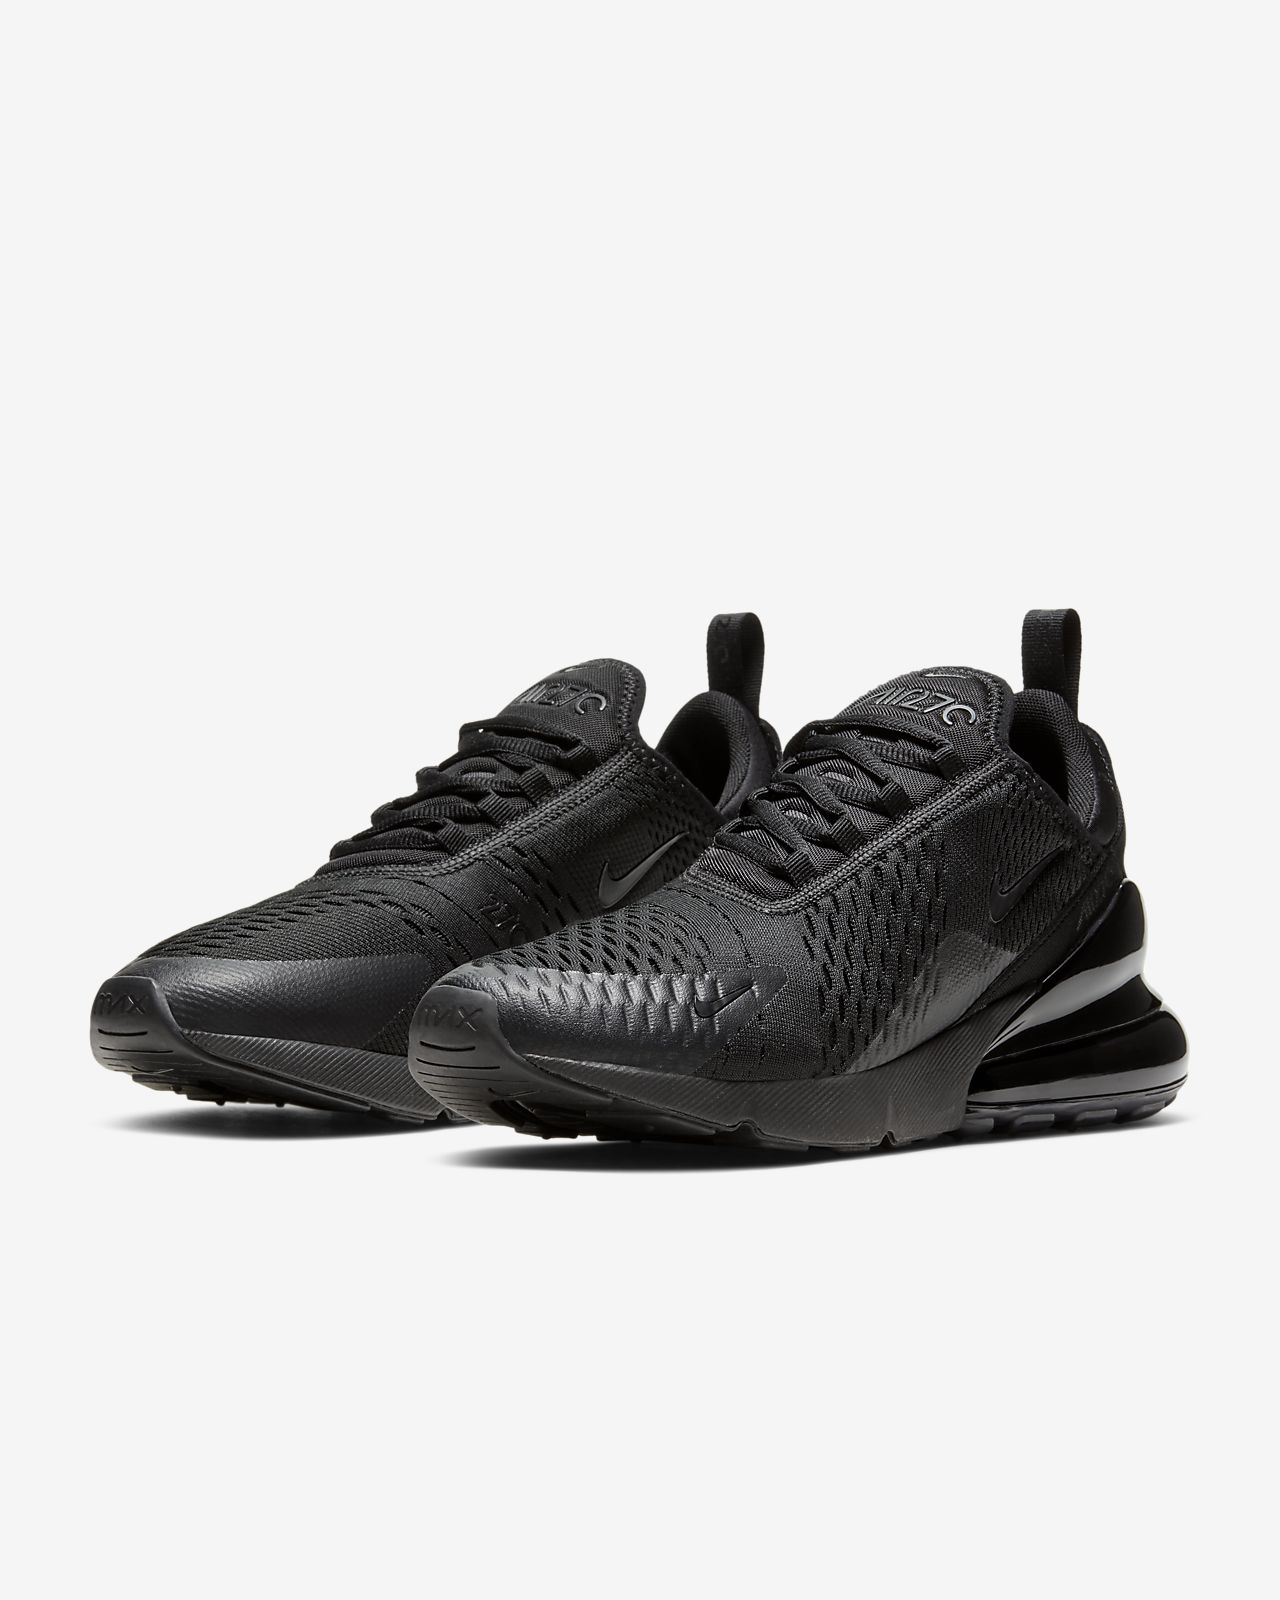 0ccec2f570 Nike Air Max 270 Men's Shoe. Nike.com EG